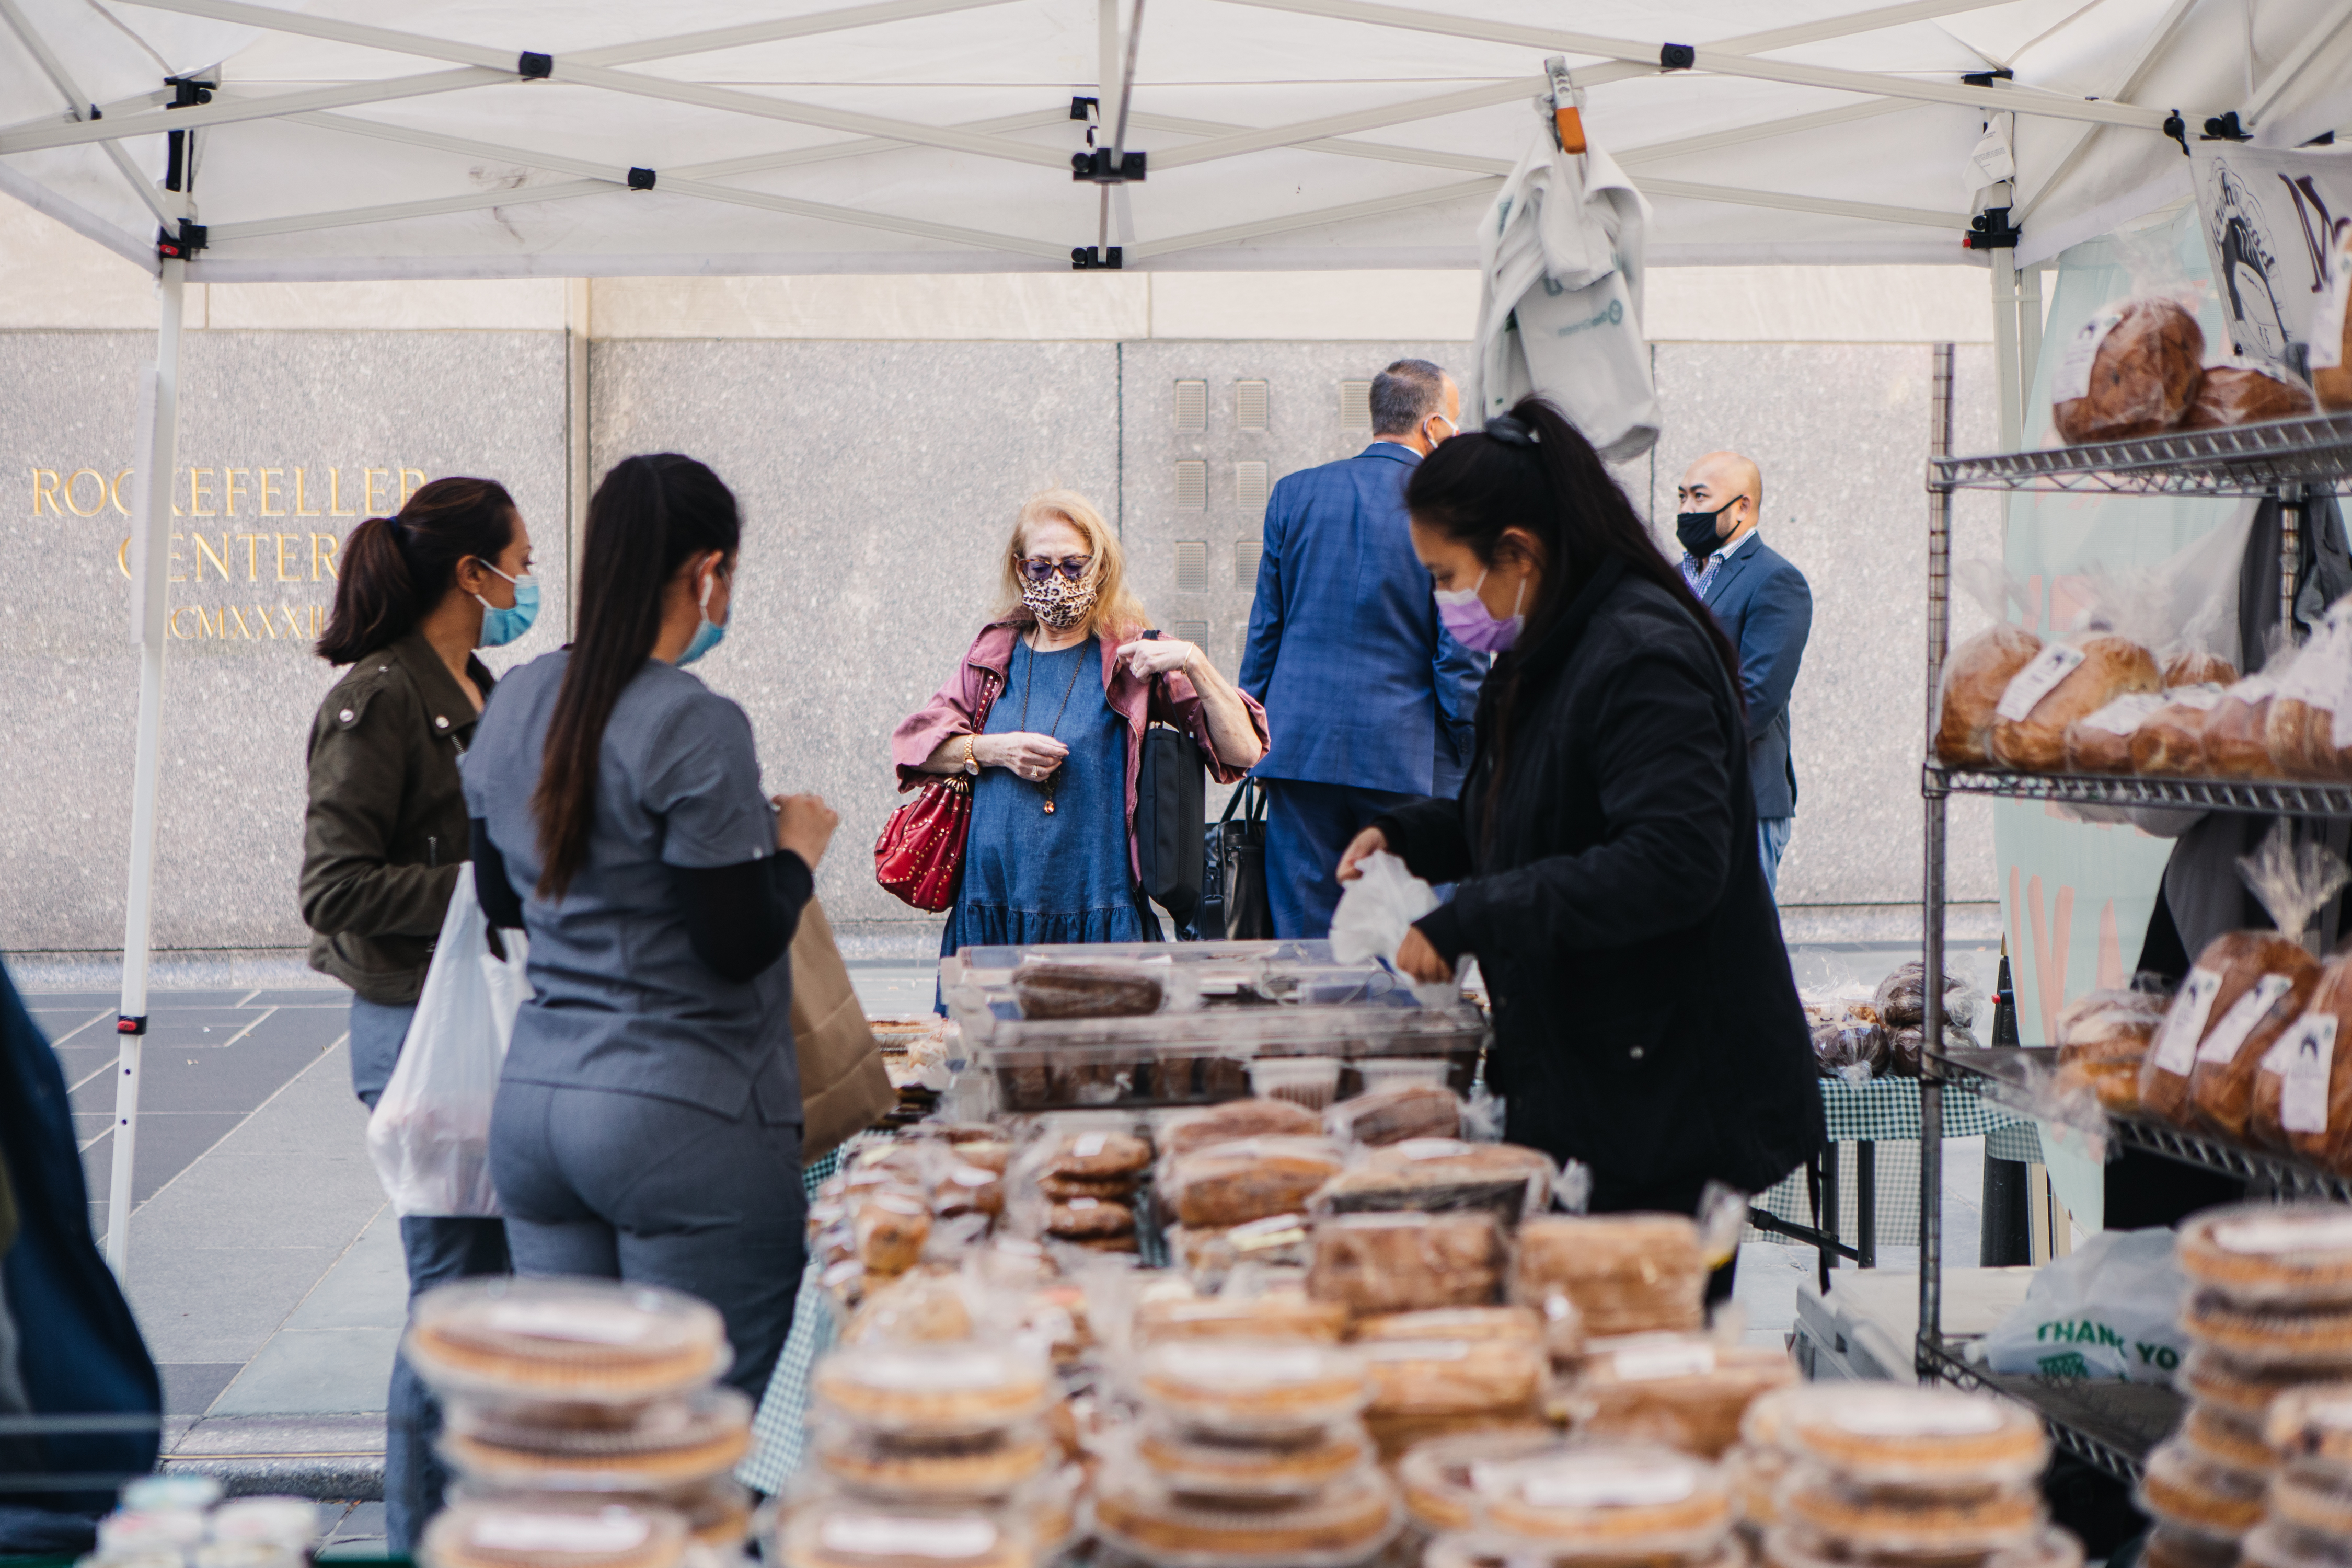 Customers gather around a tented vendor at a lunchtime market at the Rockefeller Center in Manhattan, New York